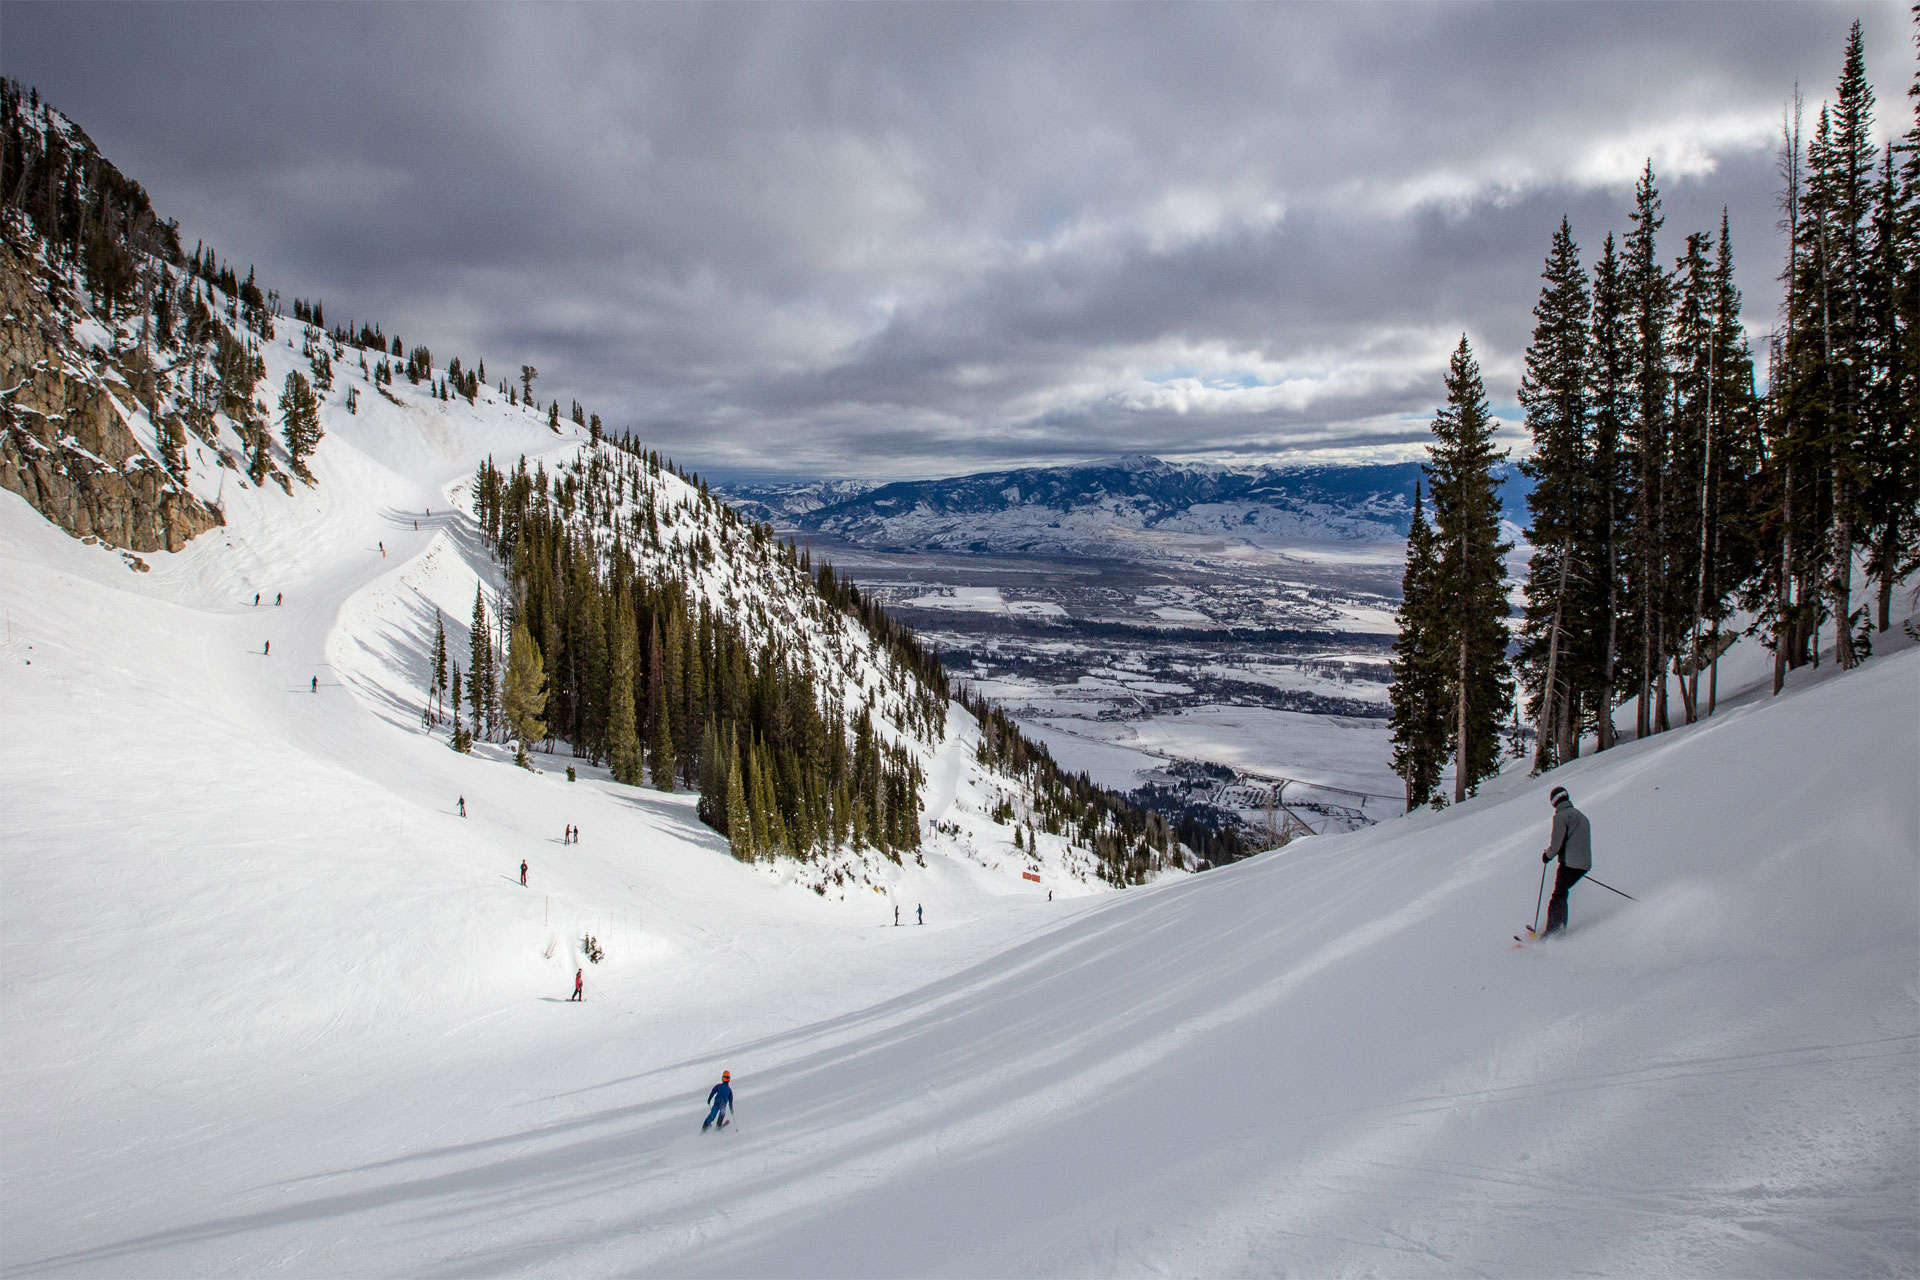 Jackson Hole WY Ski; Courtesy of CSNafzger/Shutterstock.com